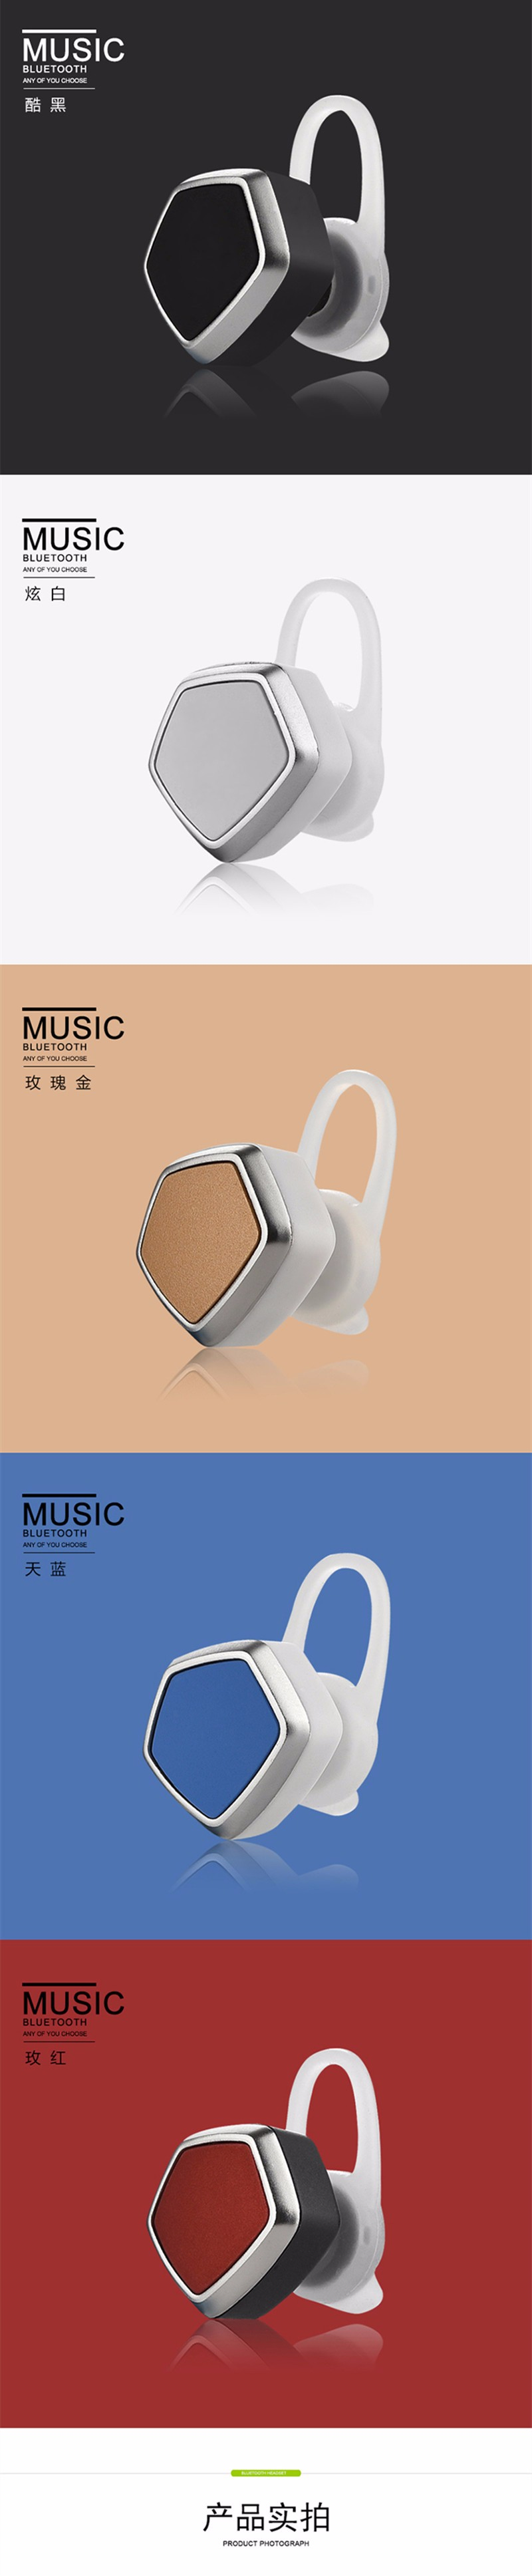 GutsyMan 2016 new styles Super Bass high Quality Earphone wireless Bluetooth H350 for Mobile Computer MP3 cool outlook Headset